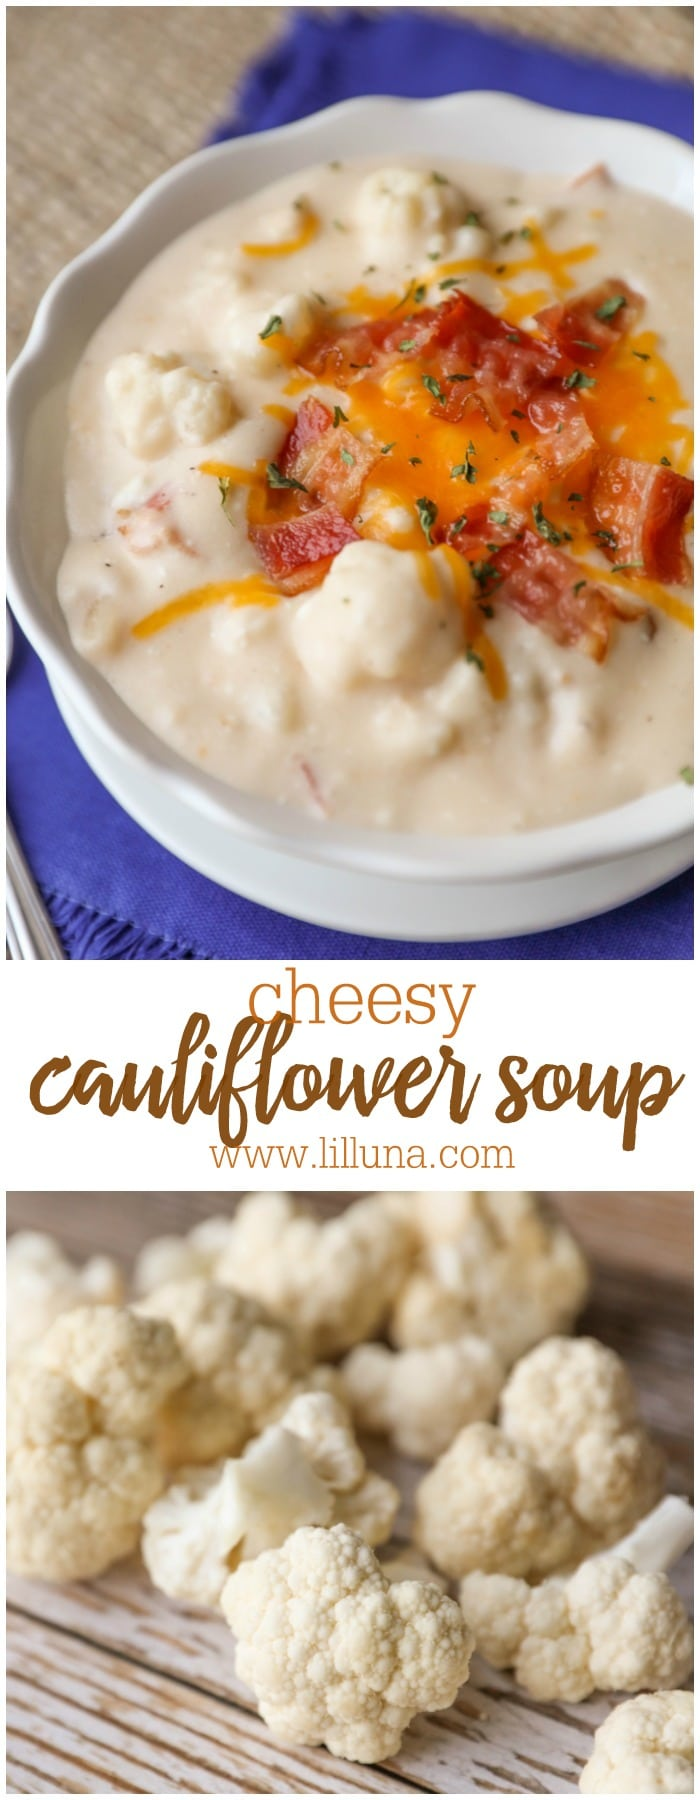 Cheesy and Delicious Cauliflower Soup. One of our favorite soup recipes to enjoy all year long!